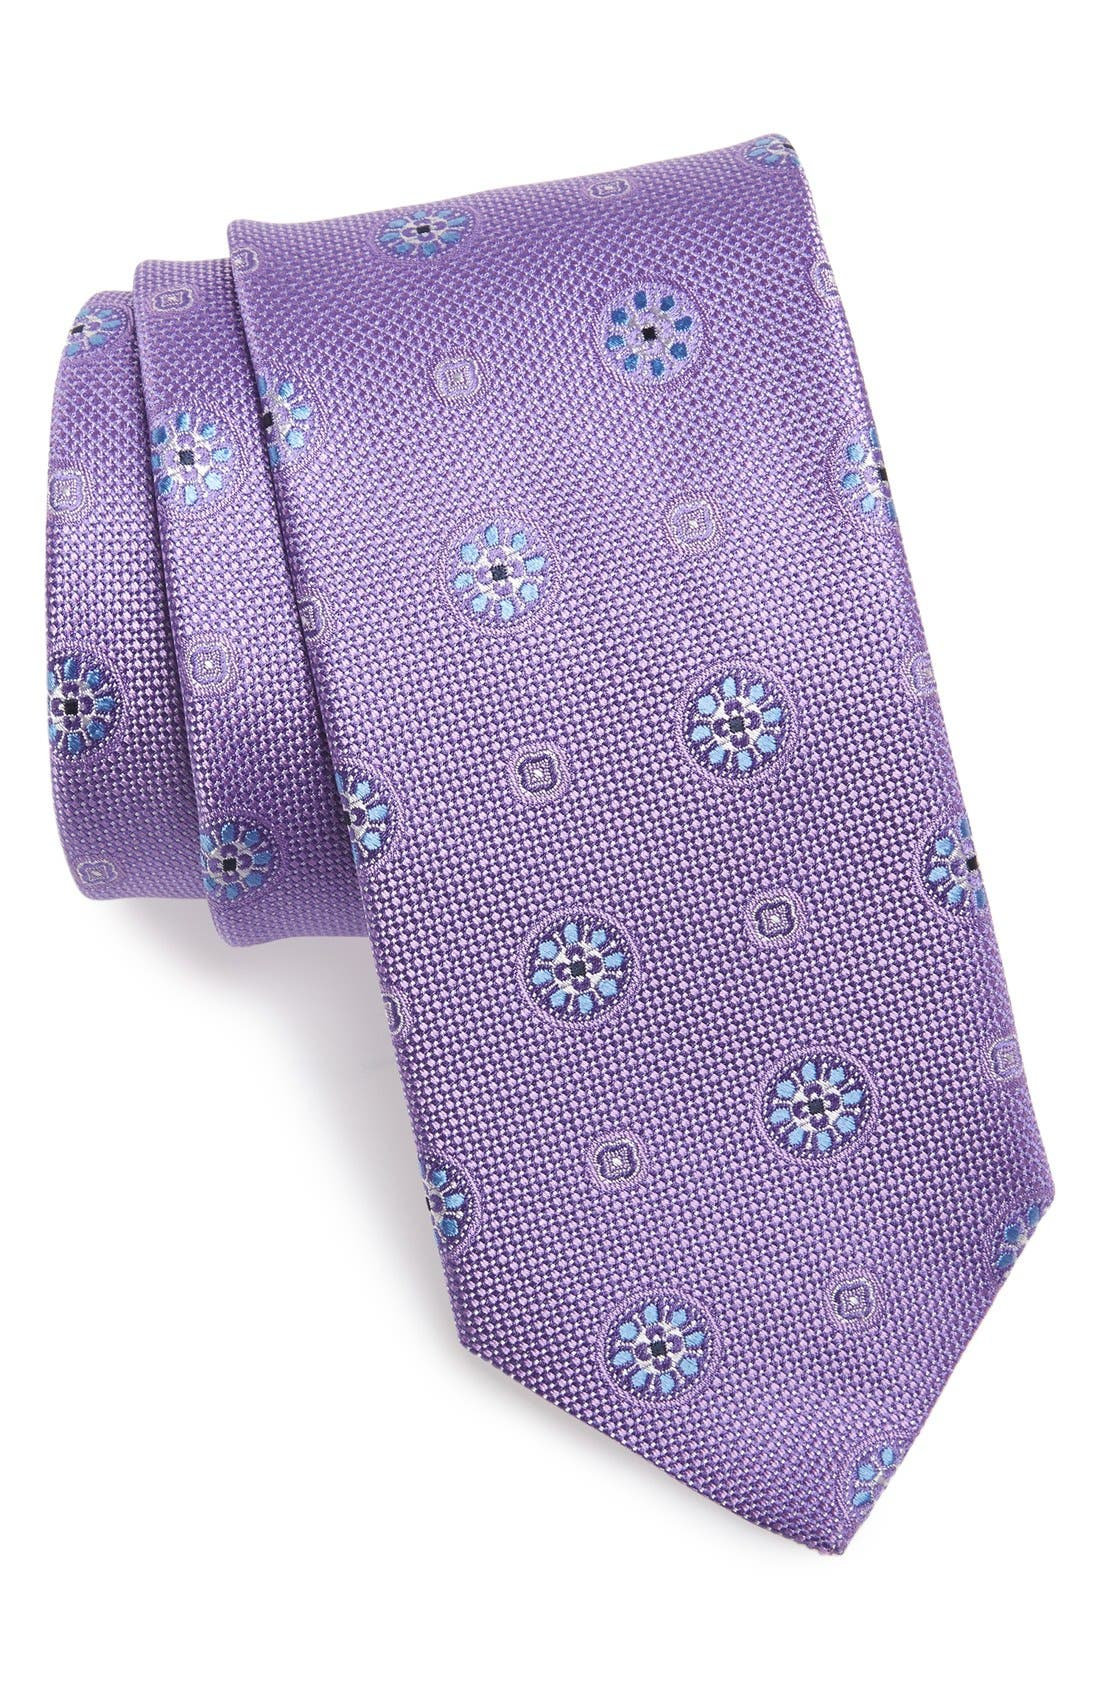 Medallion Silk Tie,                         Main,                         color, Lilac